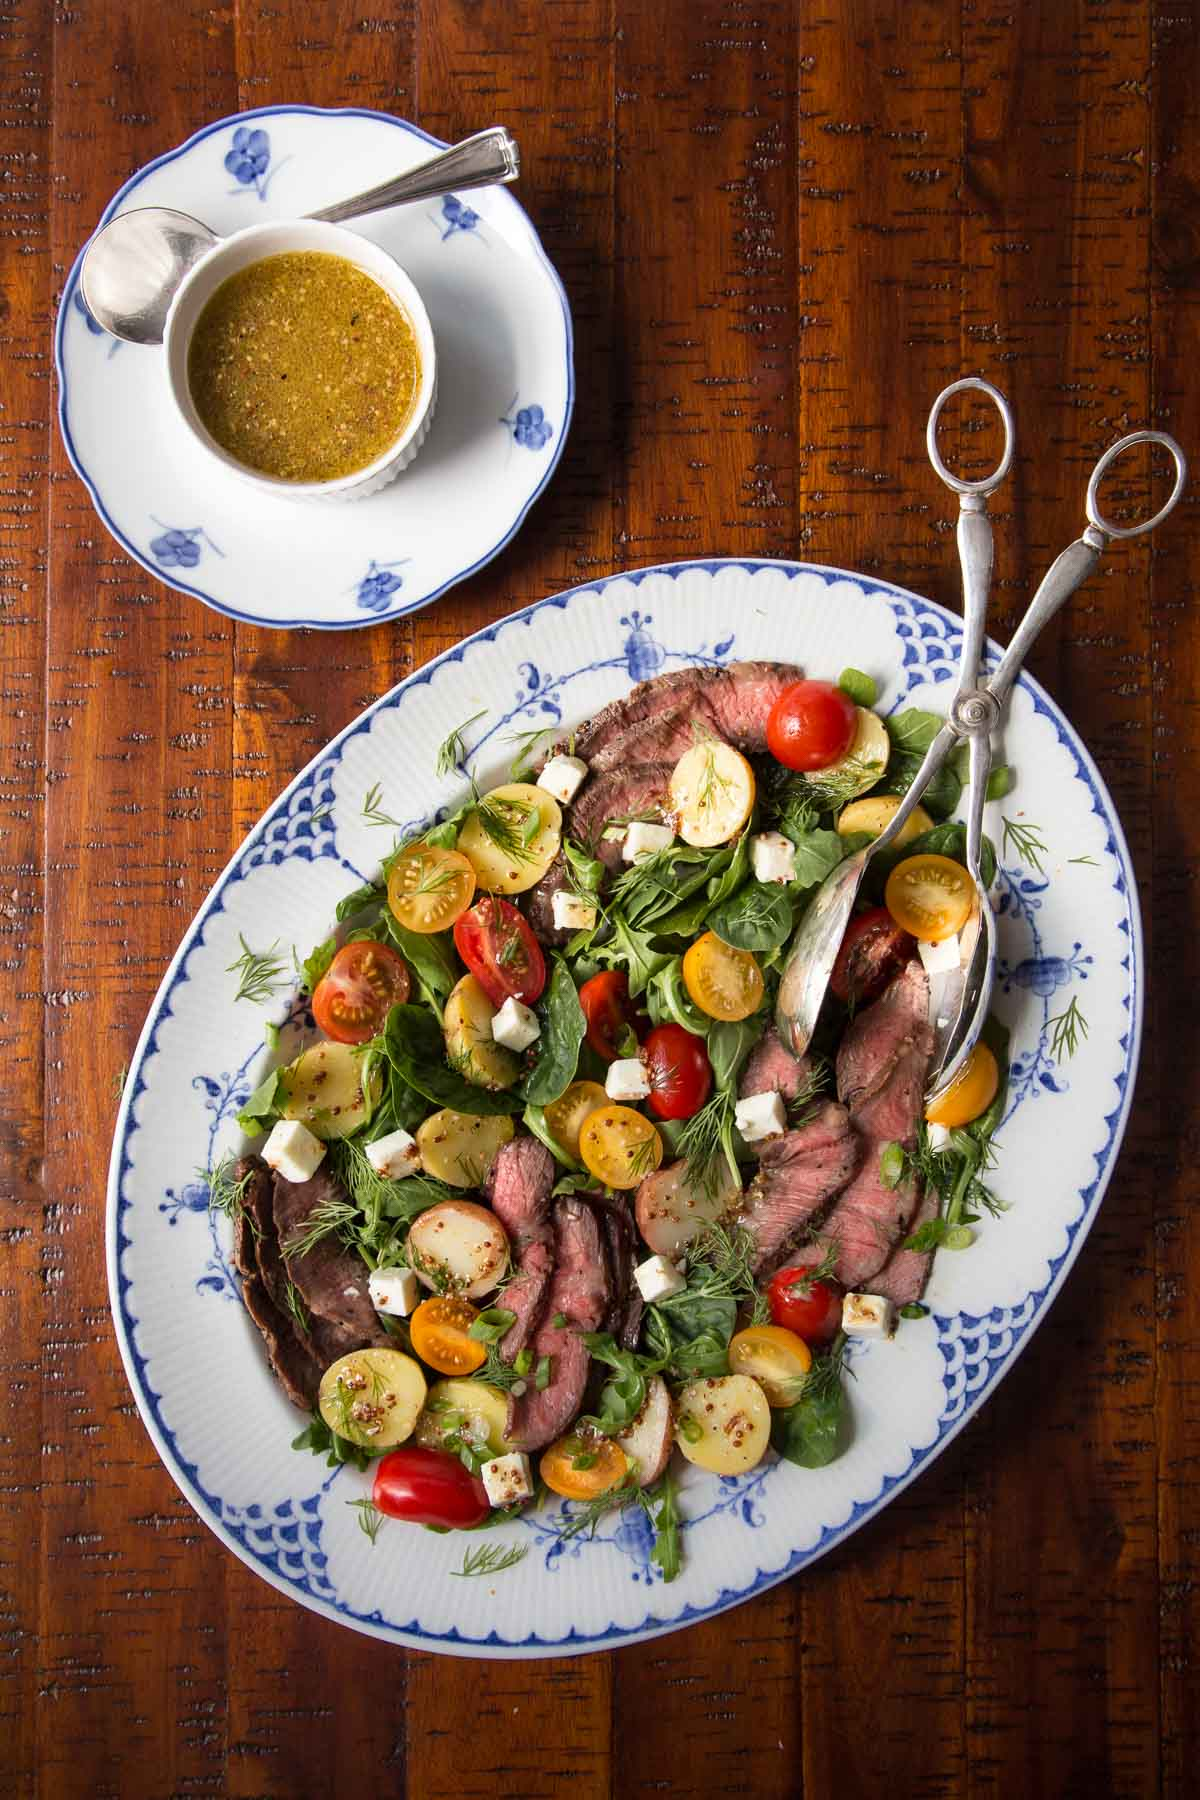 Overhead photo of a serving dish of Steak and Potato Arugula Salad with a cup of champagne vinaigrette dressing.